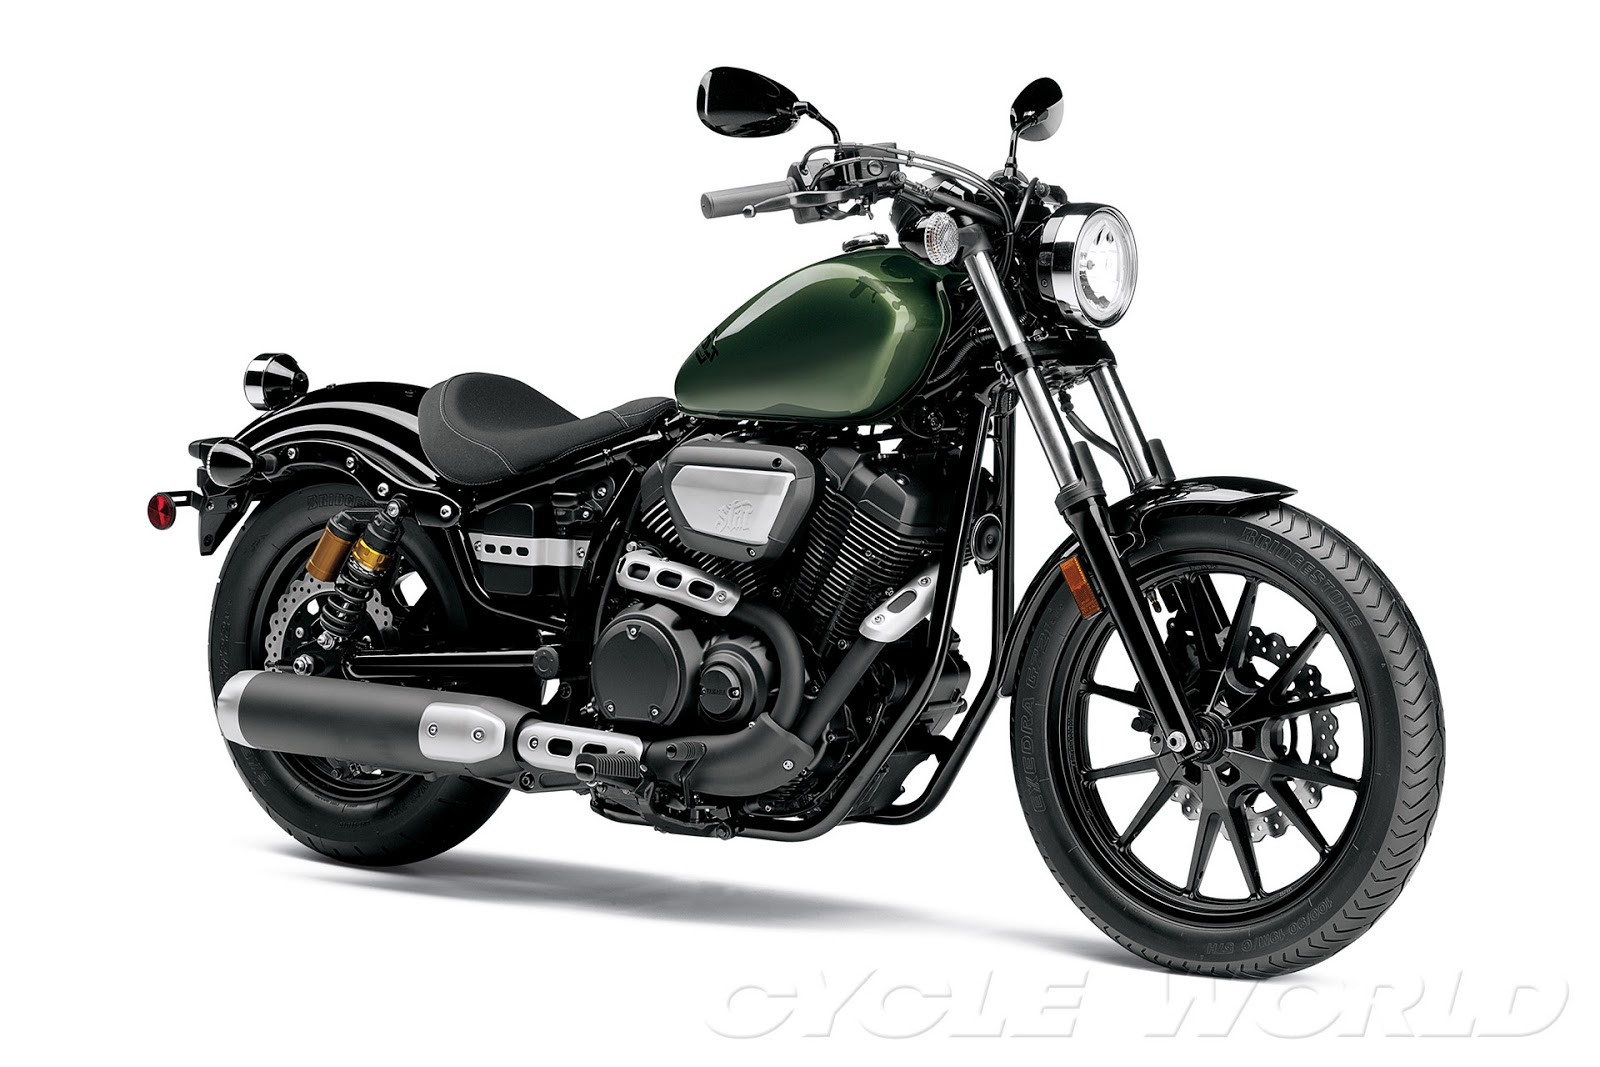 exclusive 2014 yamaha bolt specification and price otomild. Black Bedroom Furniture Sets. Home Design Ideas